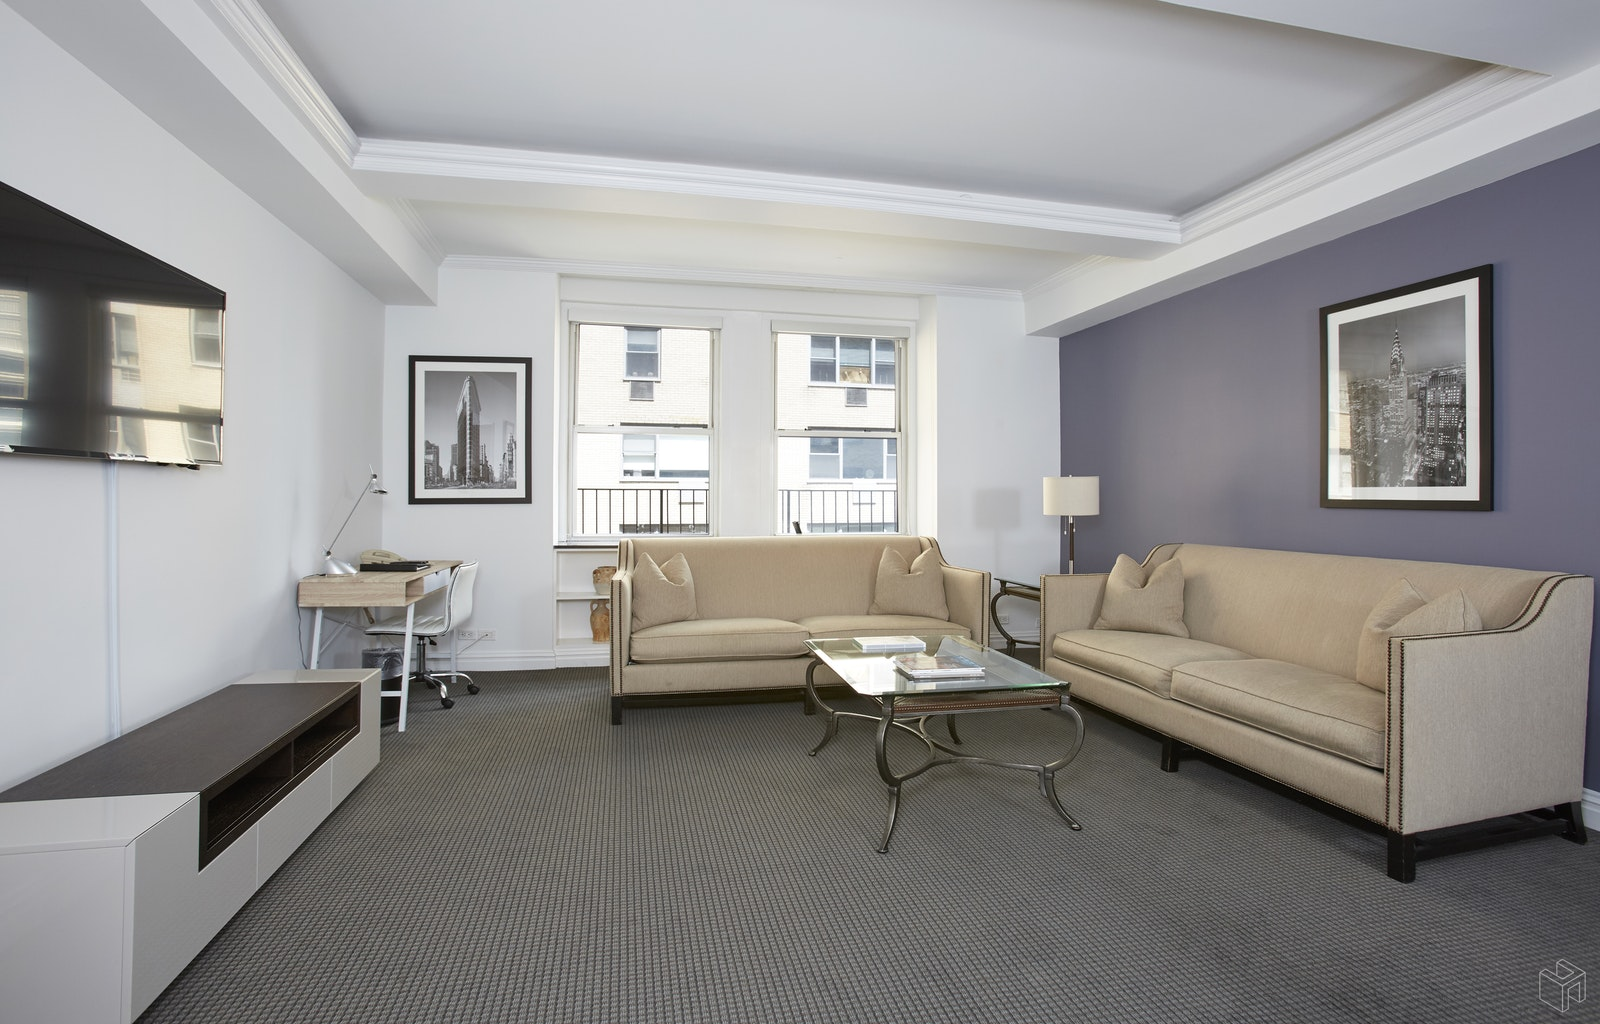 111 EAST 56TH STREET 1008, Midtown East, $975,000, Web #: 15915439